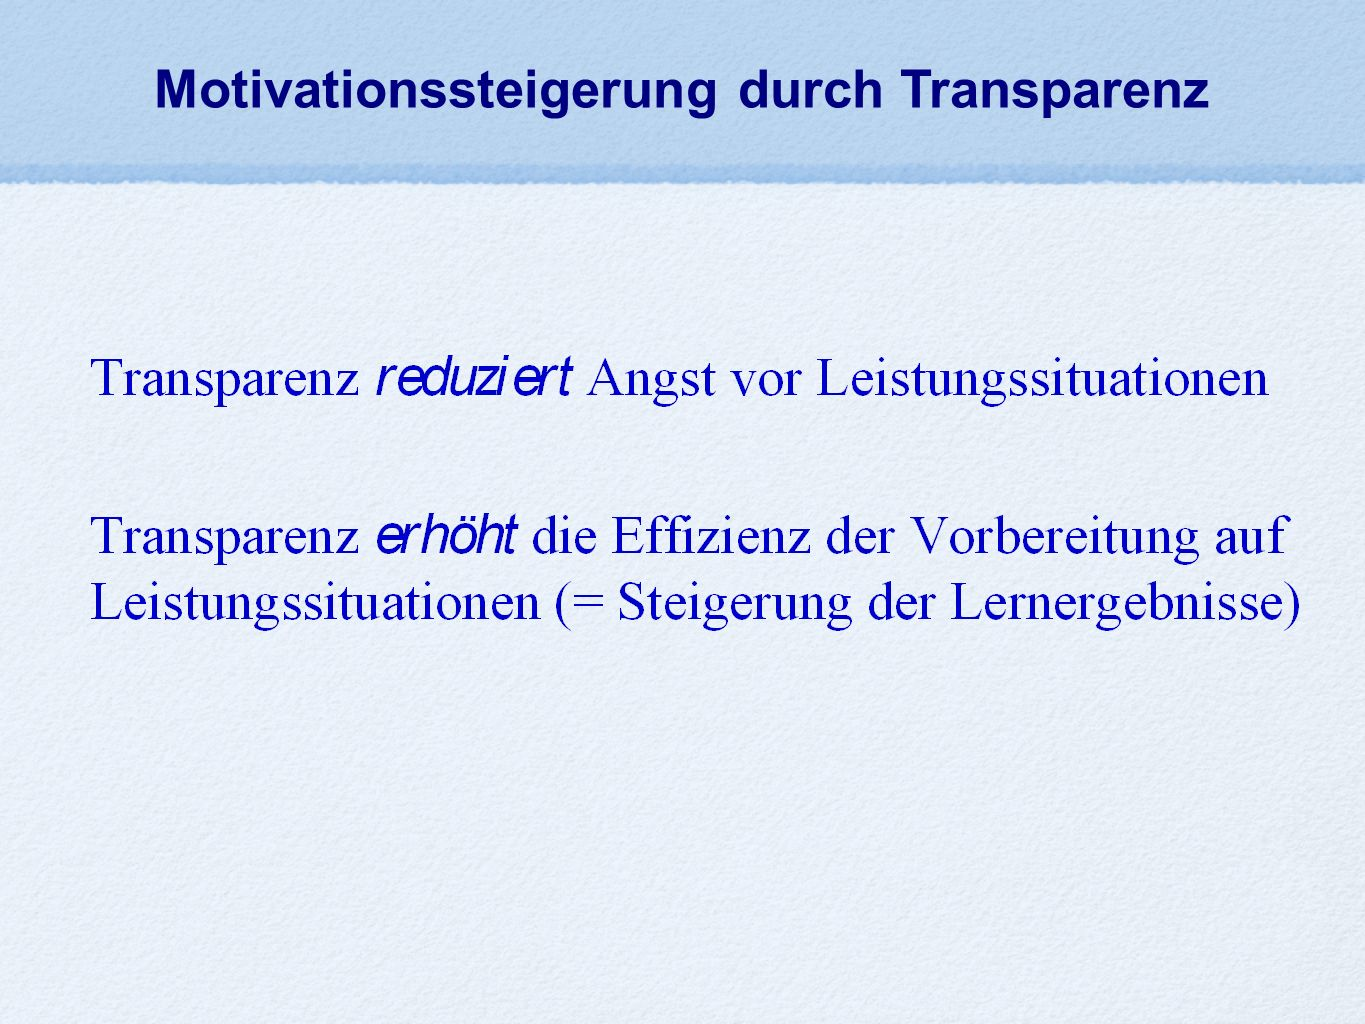 Motivationssteigerung durch Transparenz